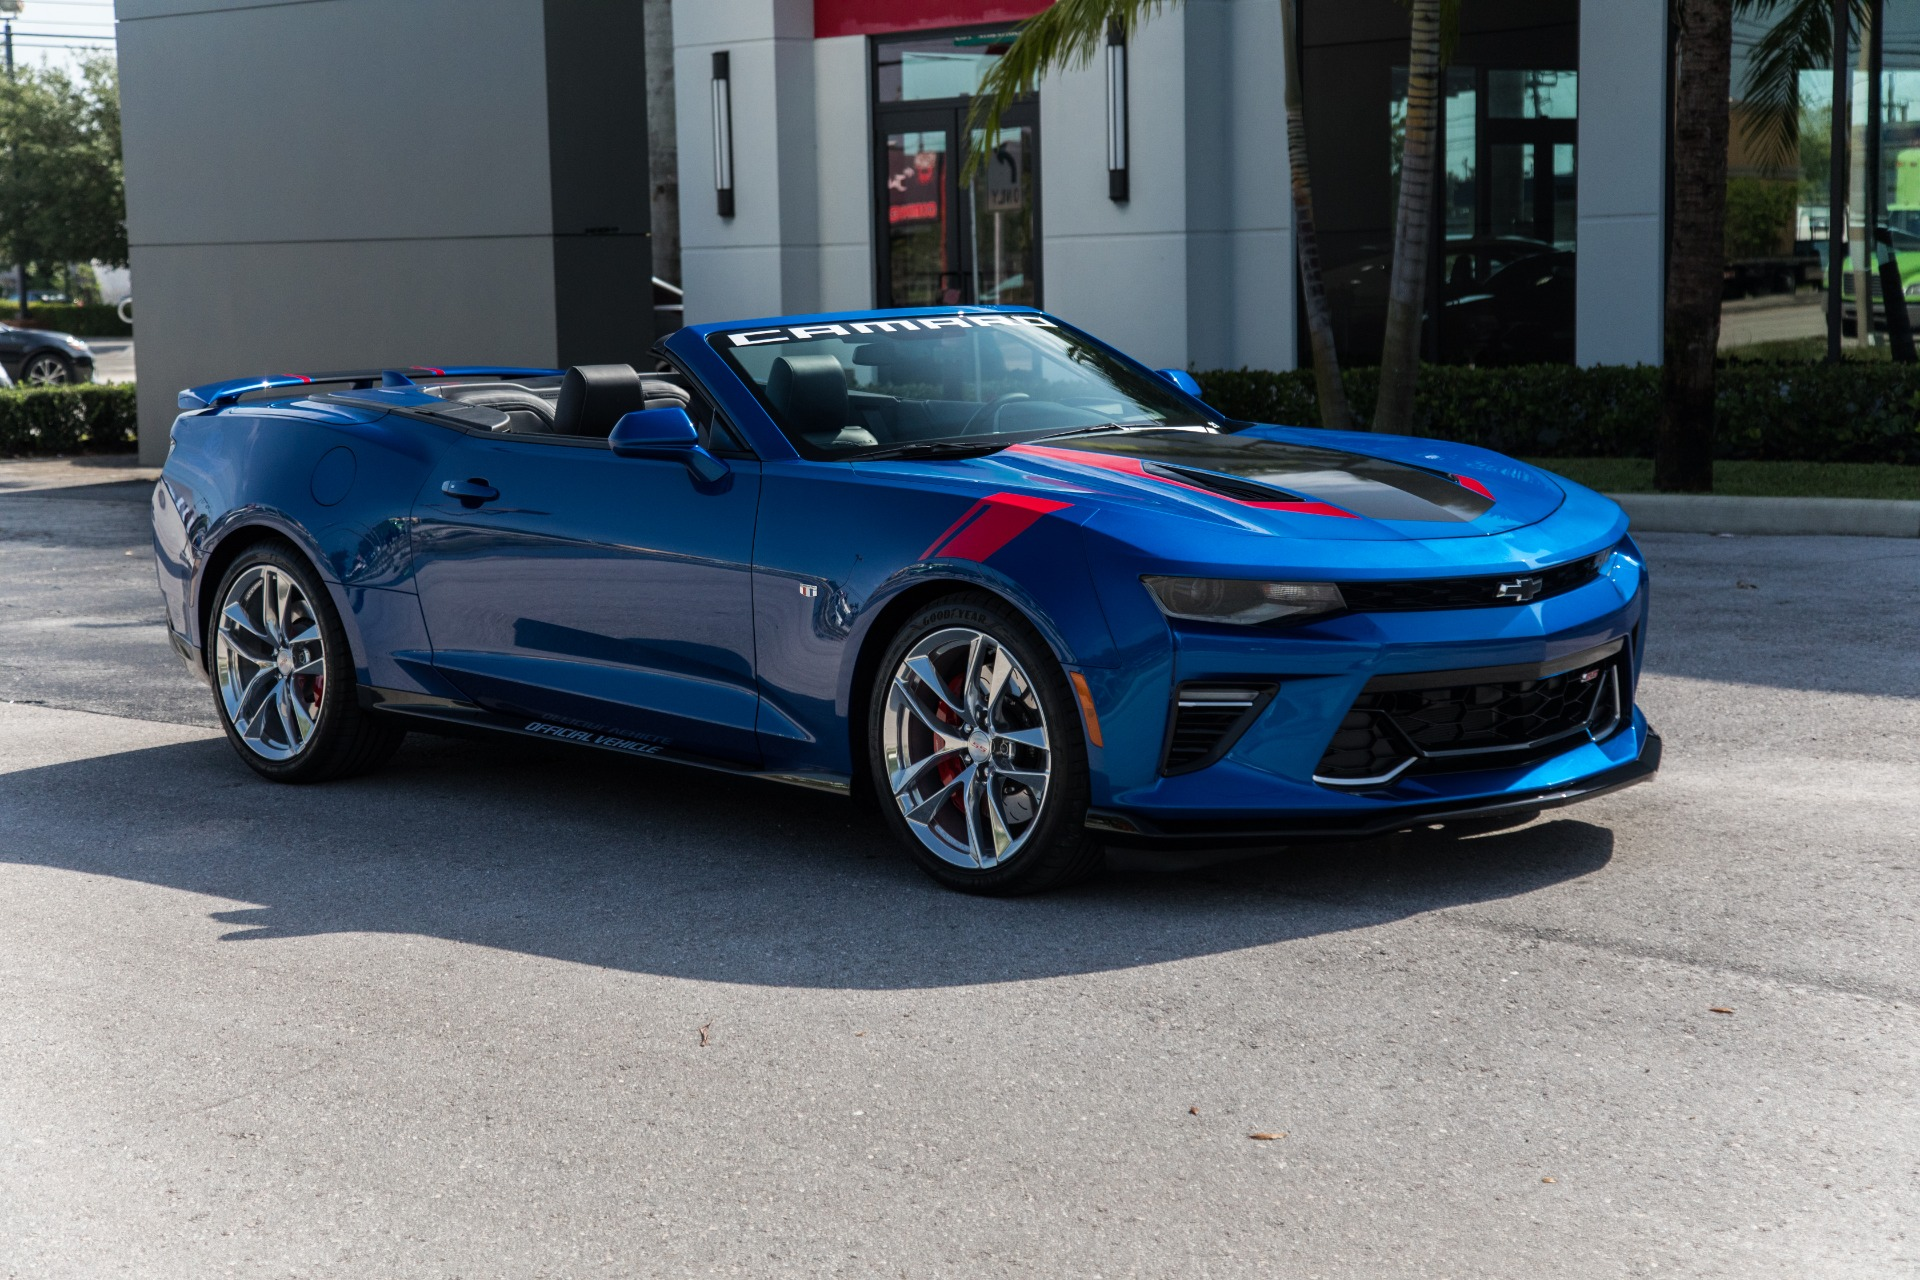 Used-2018-Chevrolet-Camaro-SS-Indy-500-Official-Vehicle